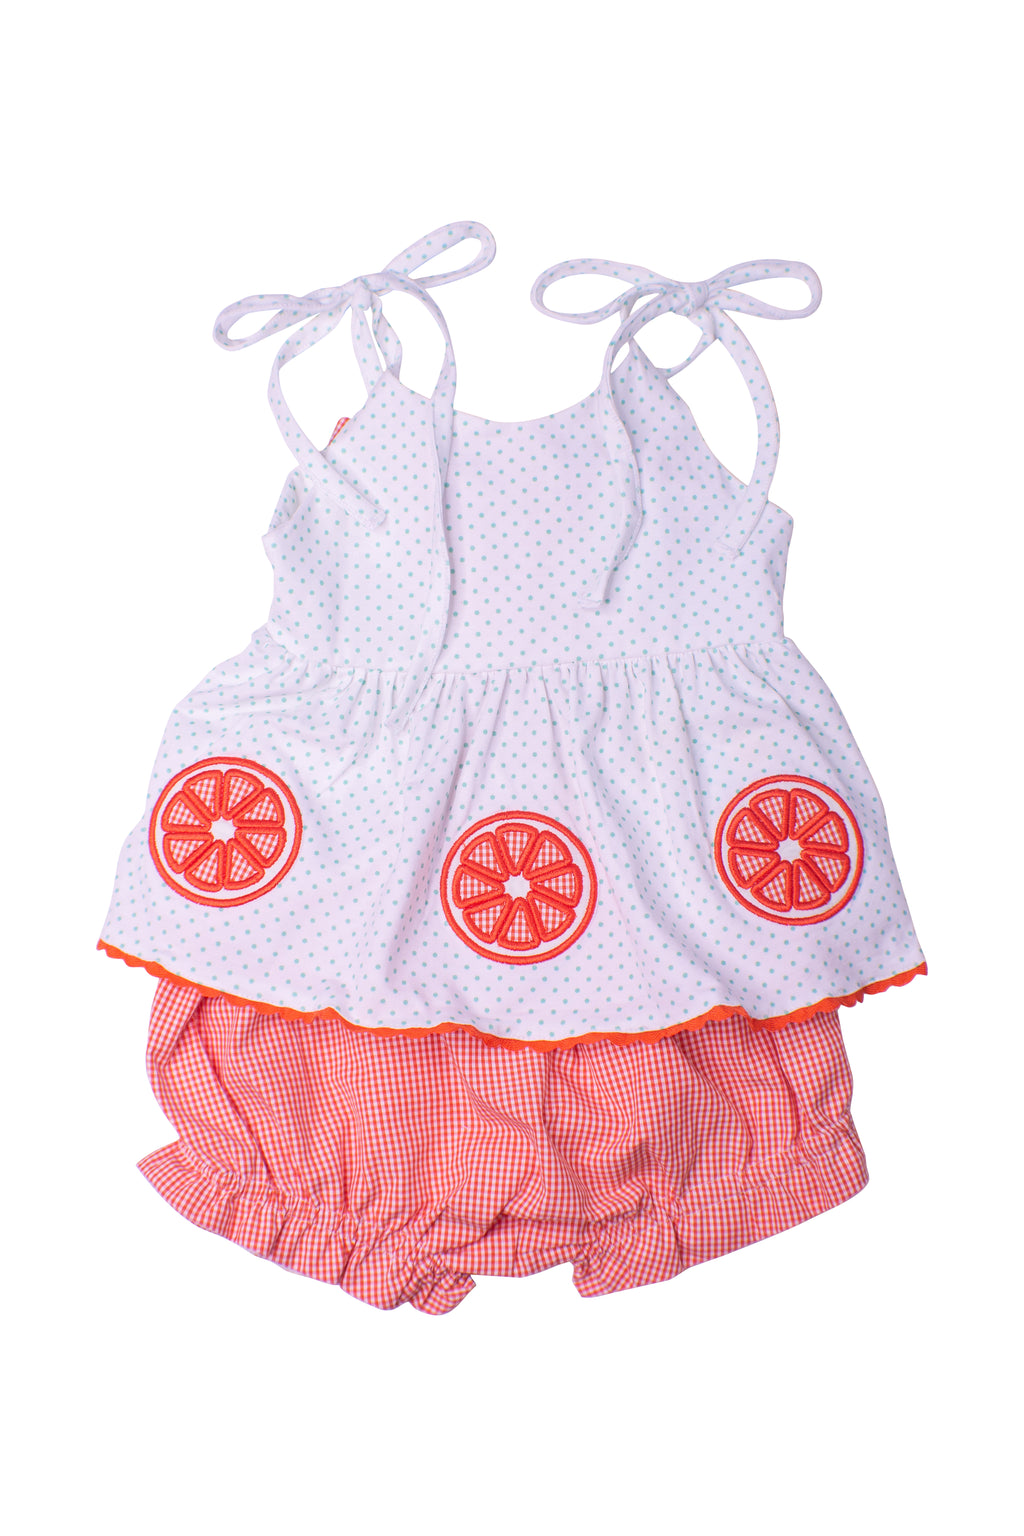 Girls Knit Orange Bloomer Set